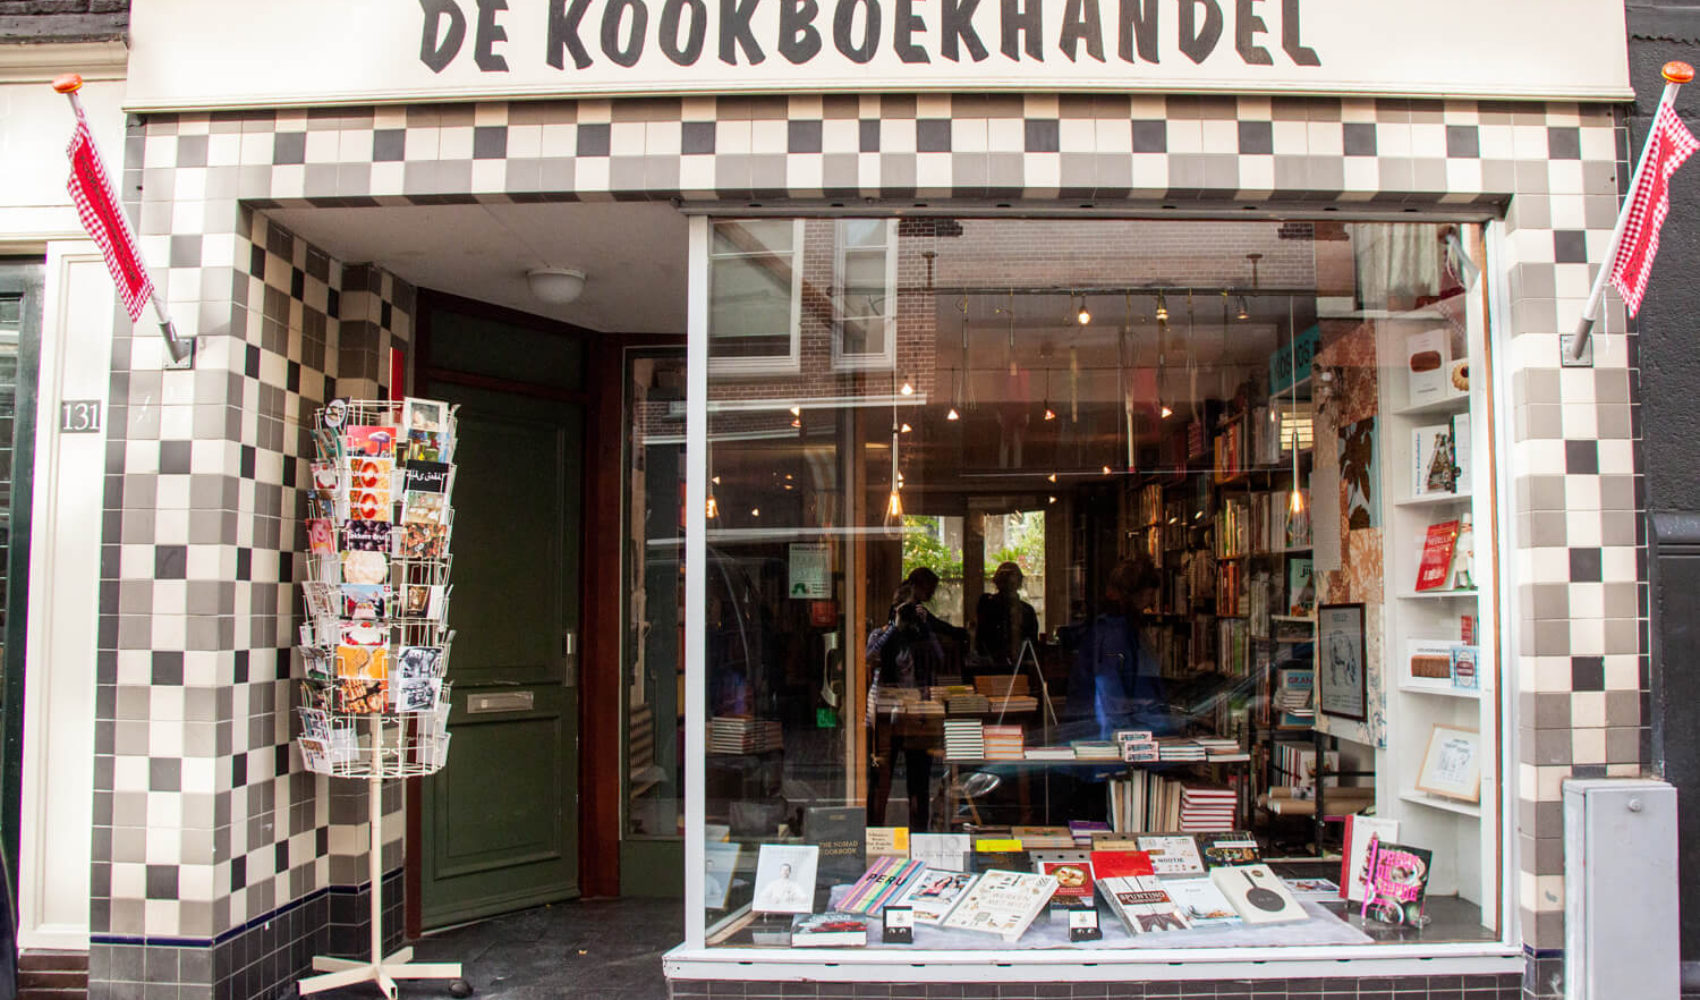 An Amsterdam Culinary Institution: Jonah Freud and Her Shop De Kookboekhandel